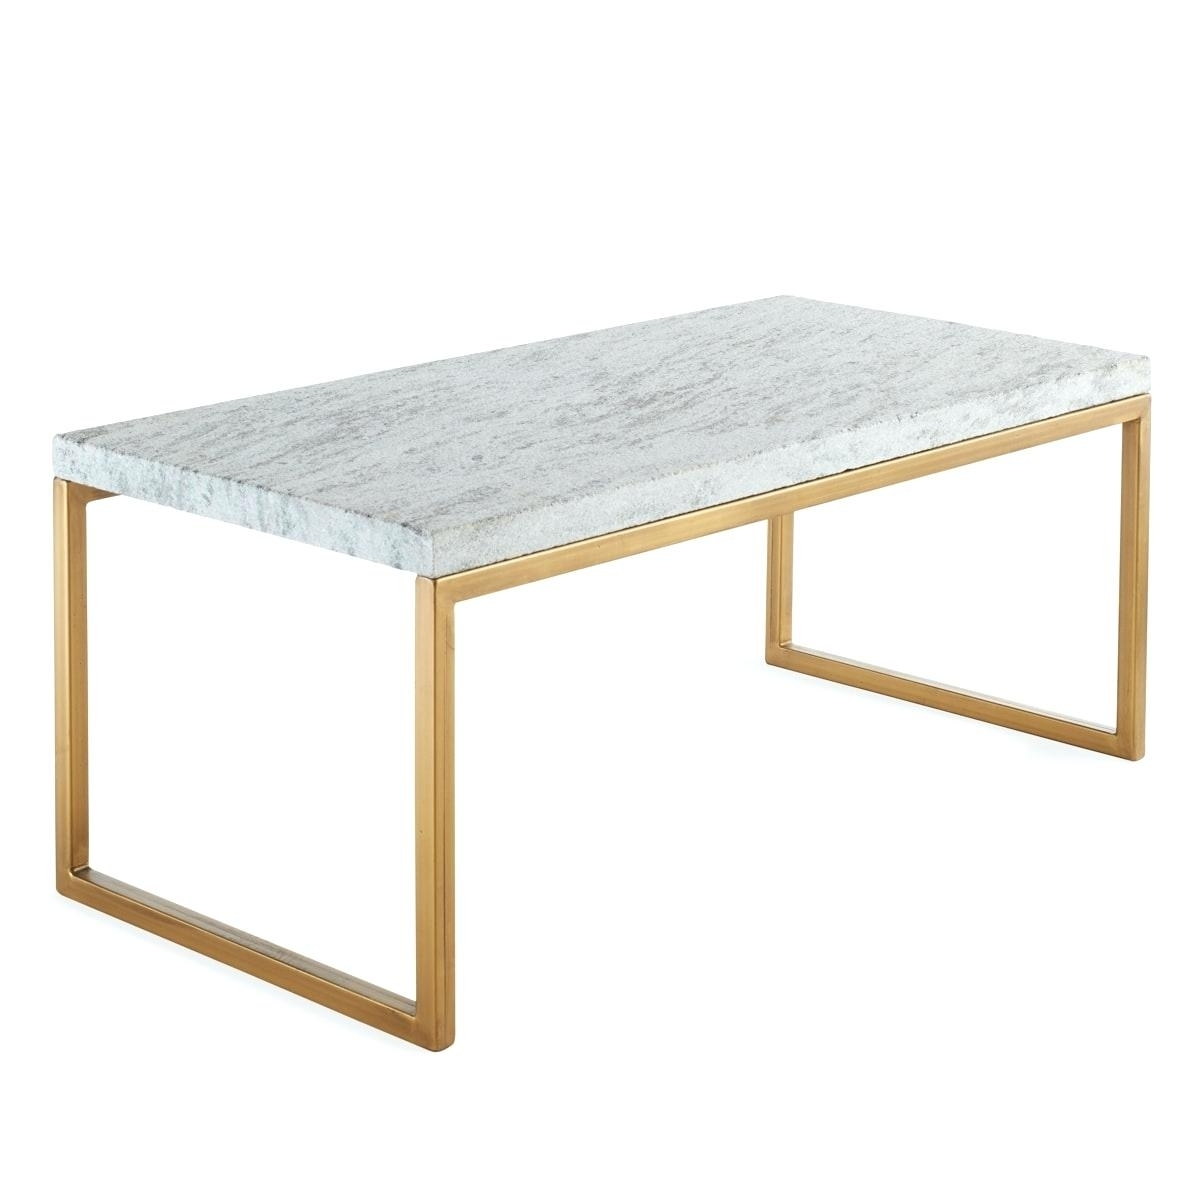 Modern Marble Coffee Table Wisteria Modern Marble Iron Coffee Table inside Modern Marble Iron Coffee Tables (Image 21 of 30)